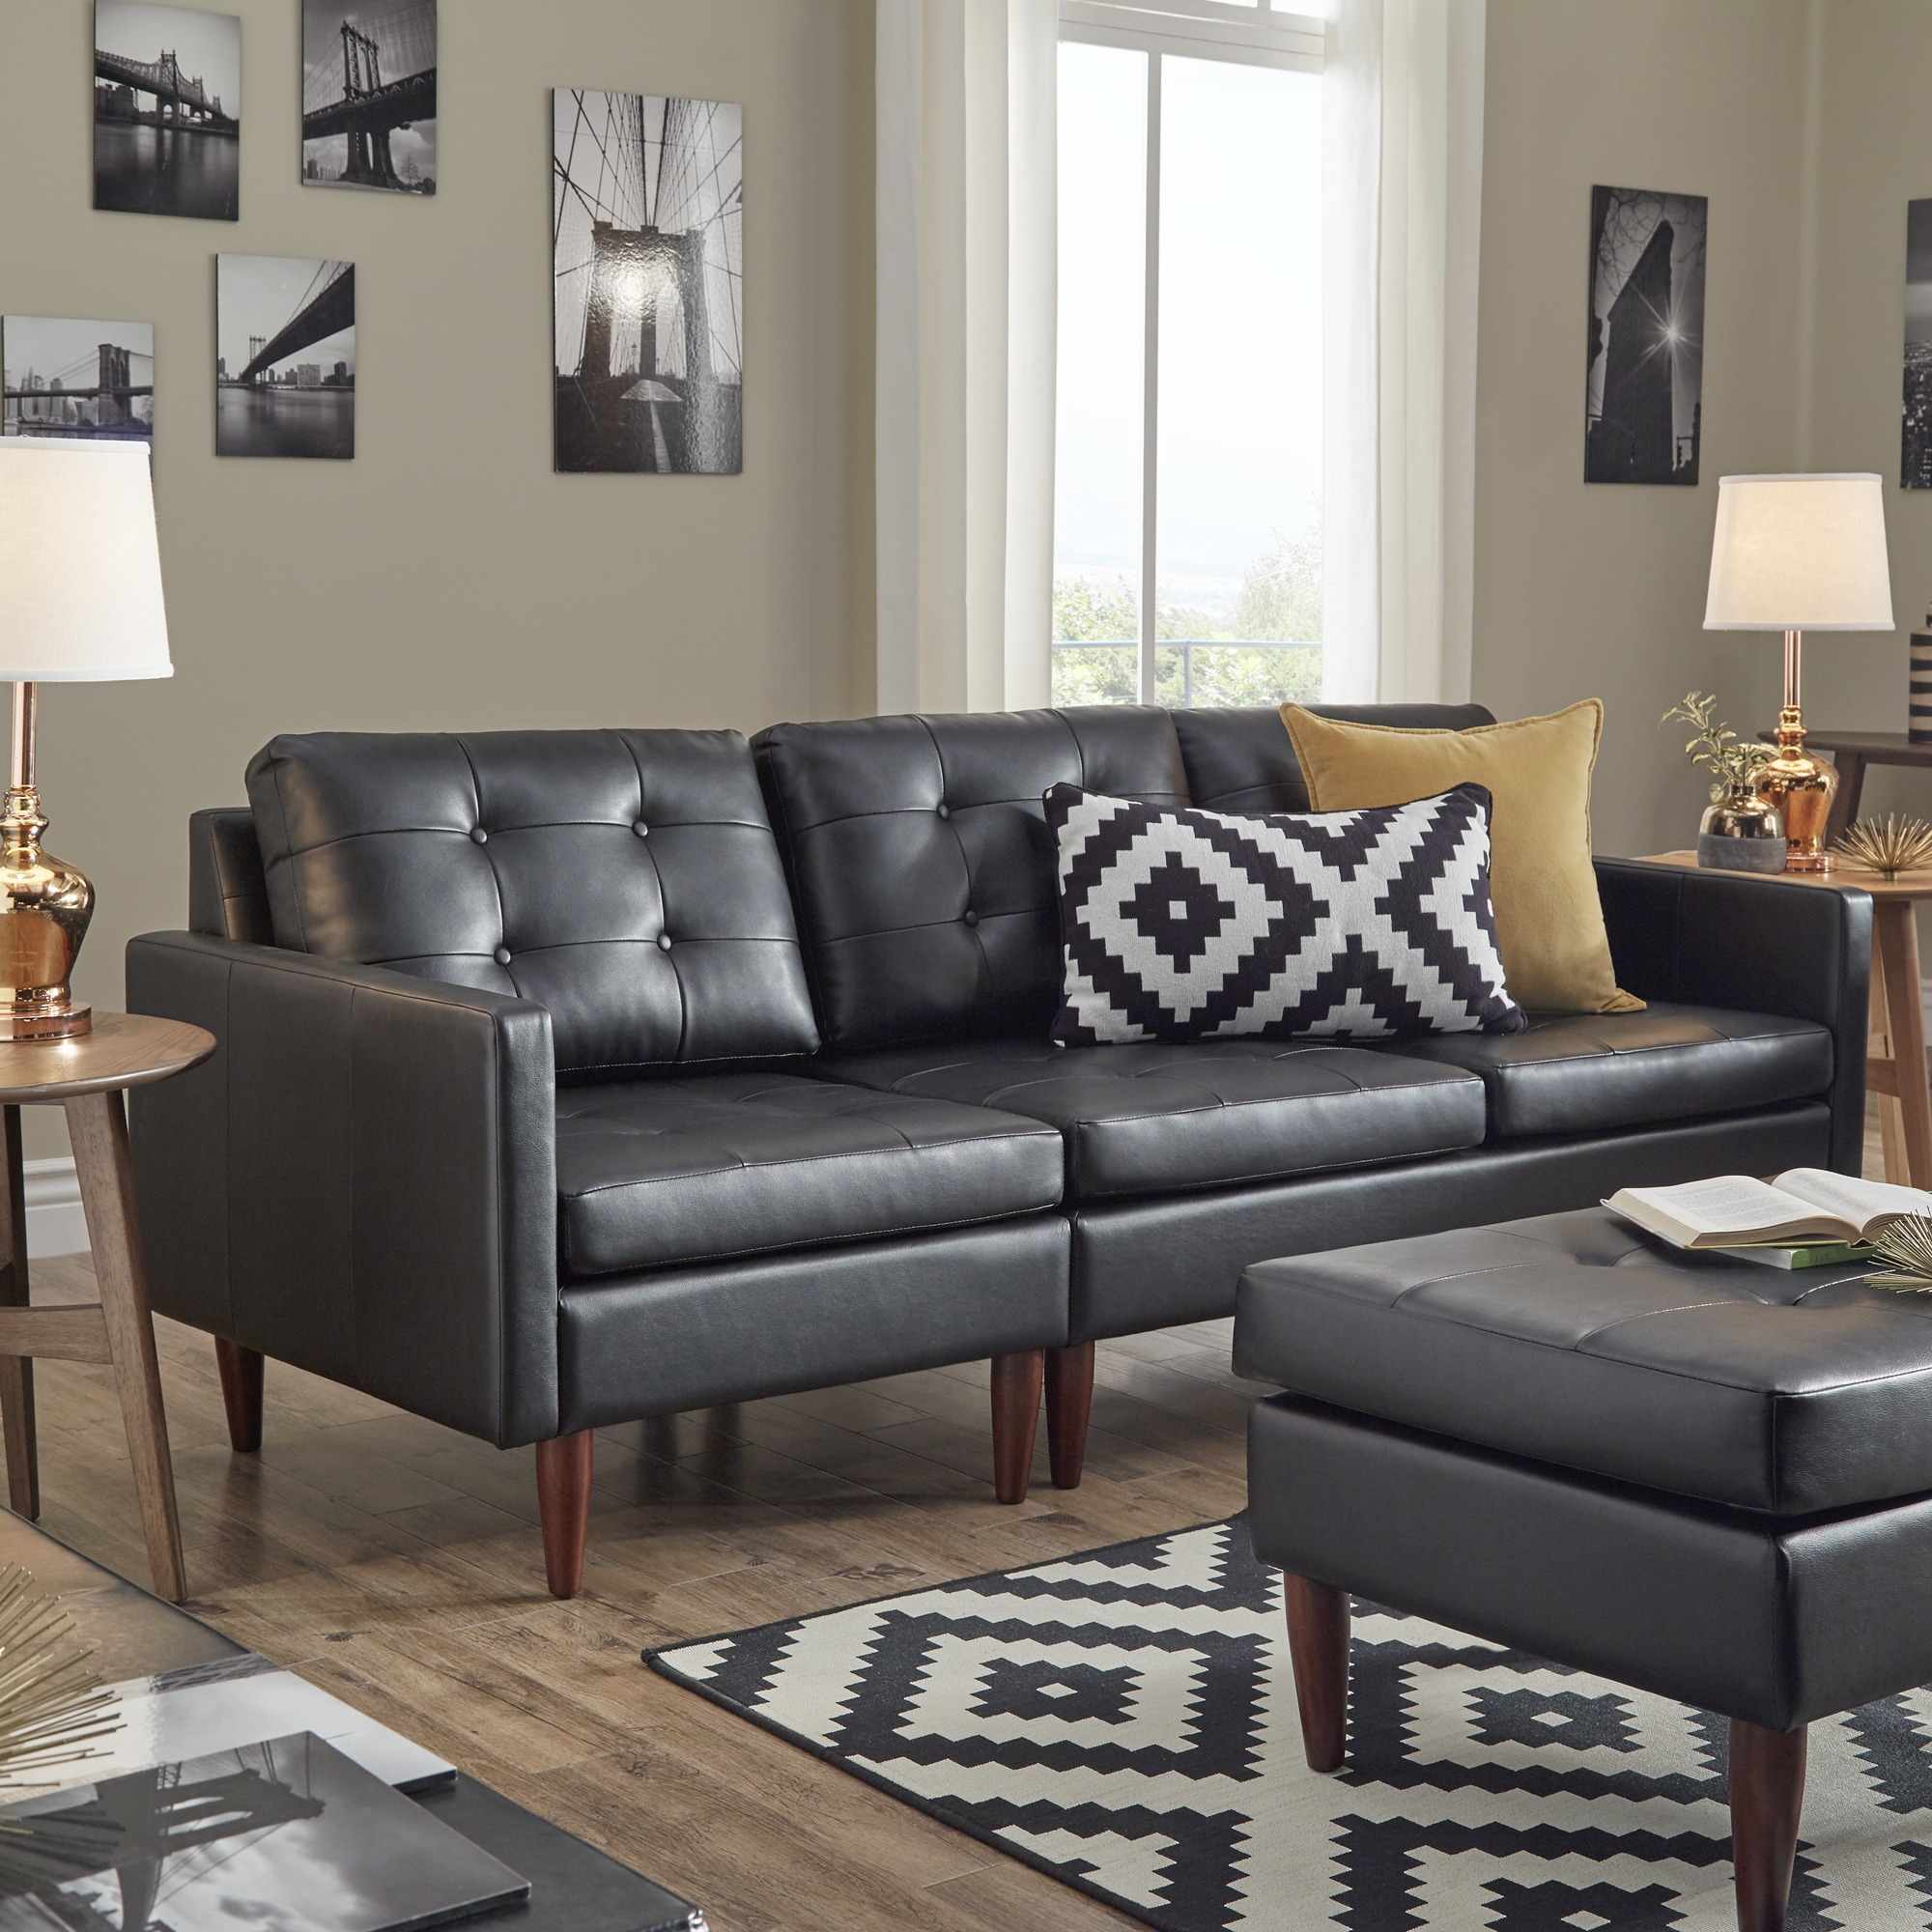 Shawna Black Button Tufted Leather Gel Sofa by iNSPIRE Q Modern - Free  Shipping Today - Overstock.com - 25803408